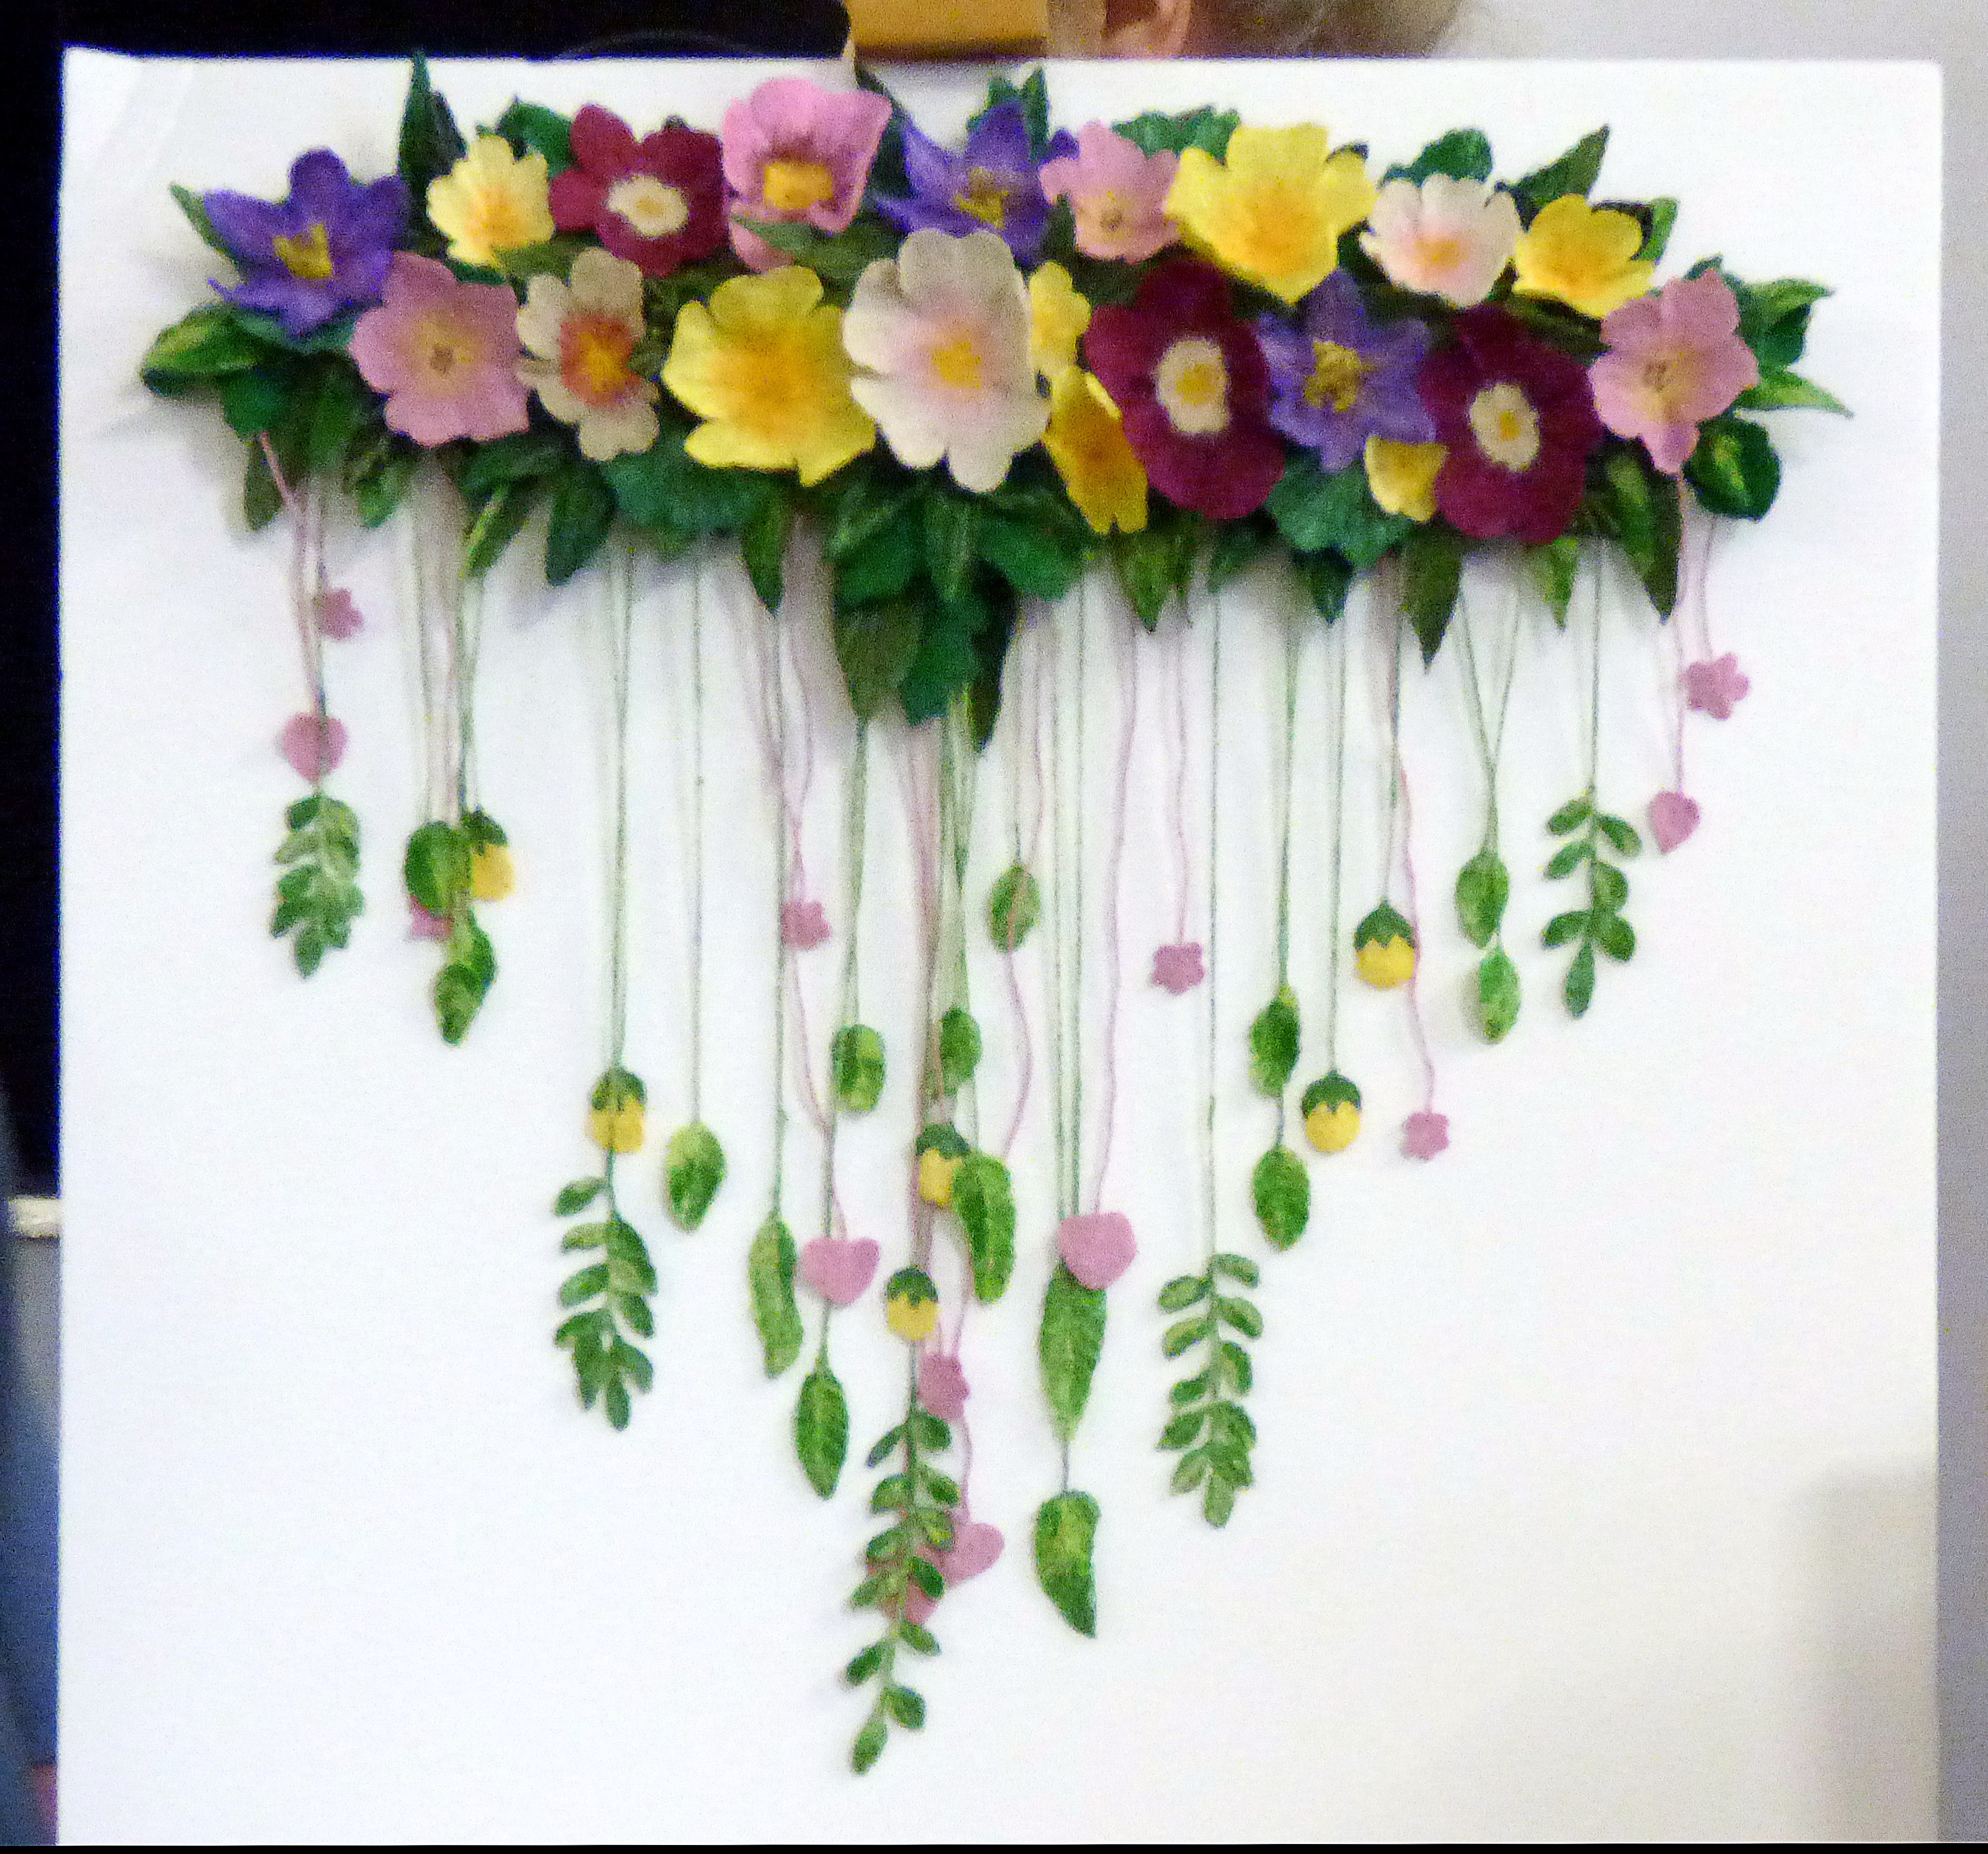 embroidery by Moya McCarthy for Capability Brown exhibition